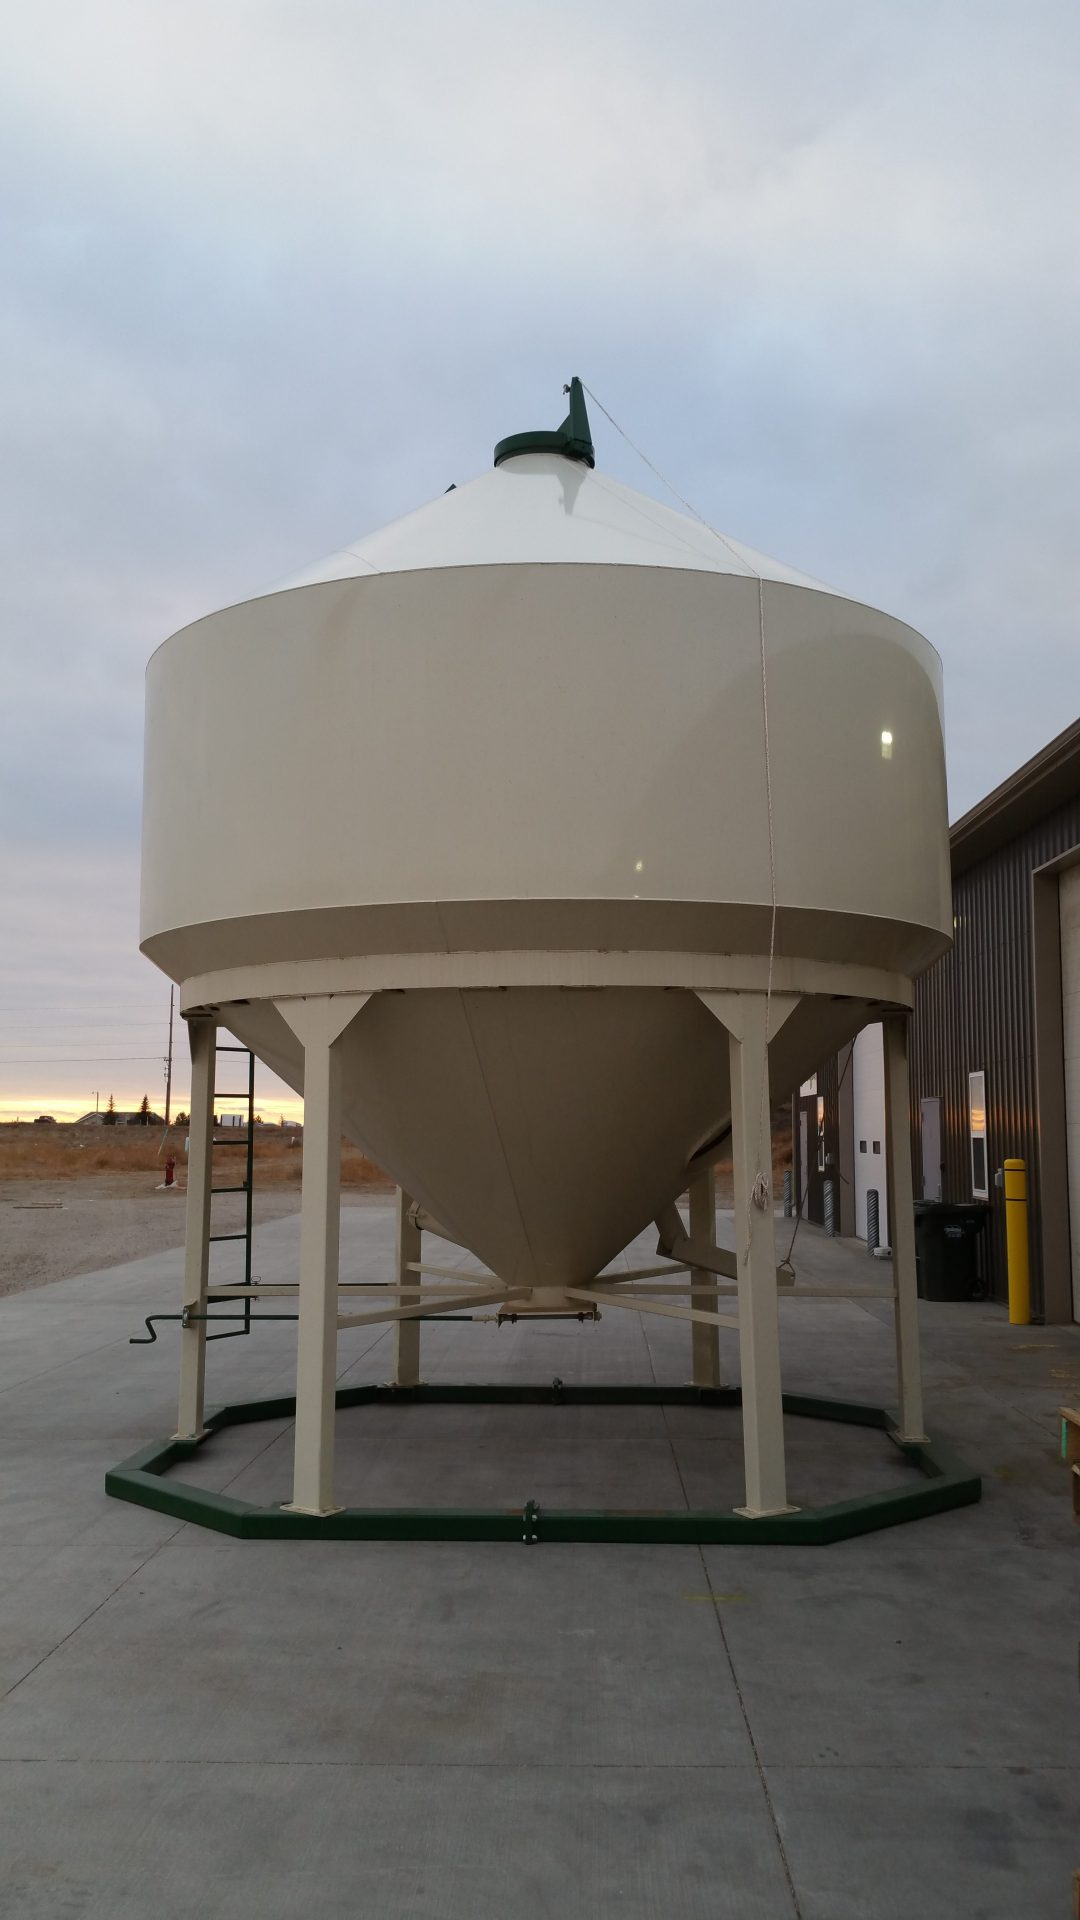 New grain bin for raw grain storage.